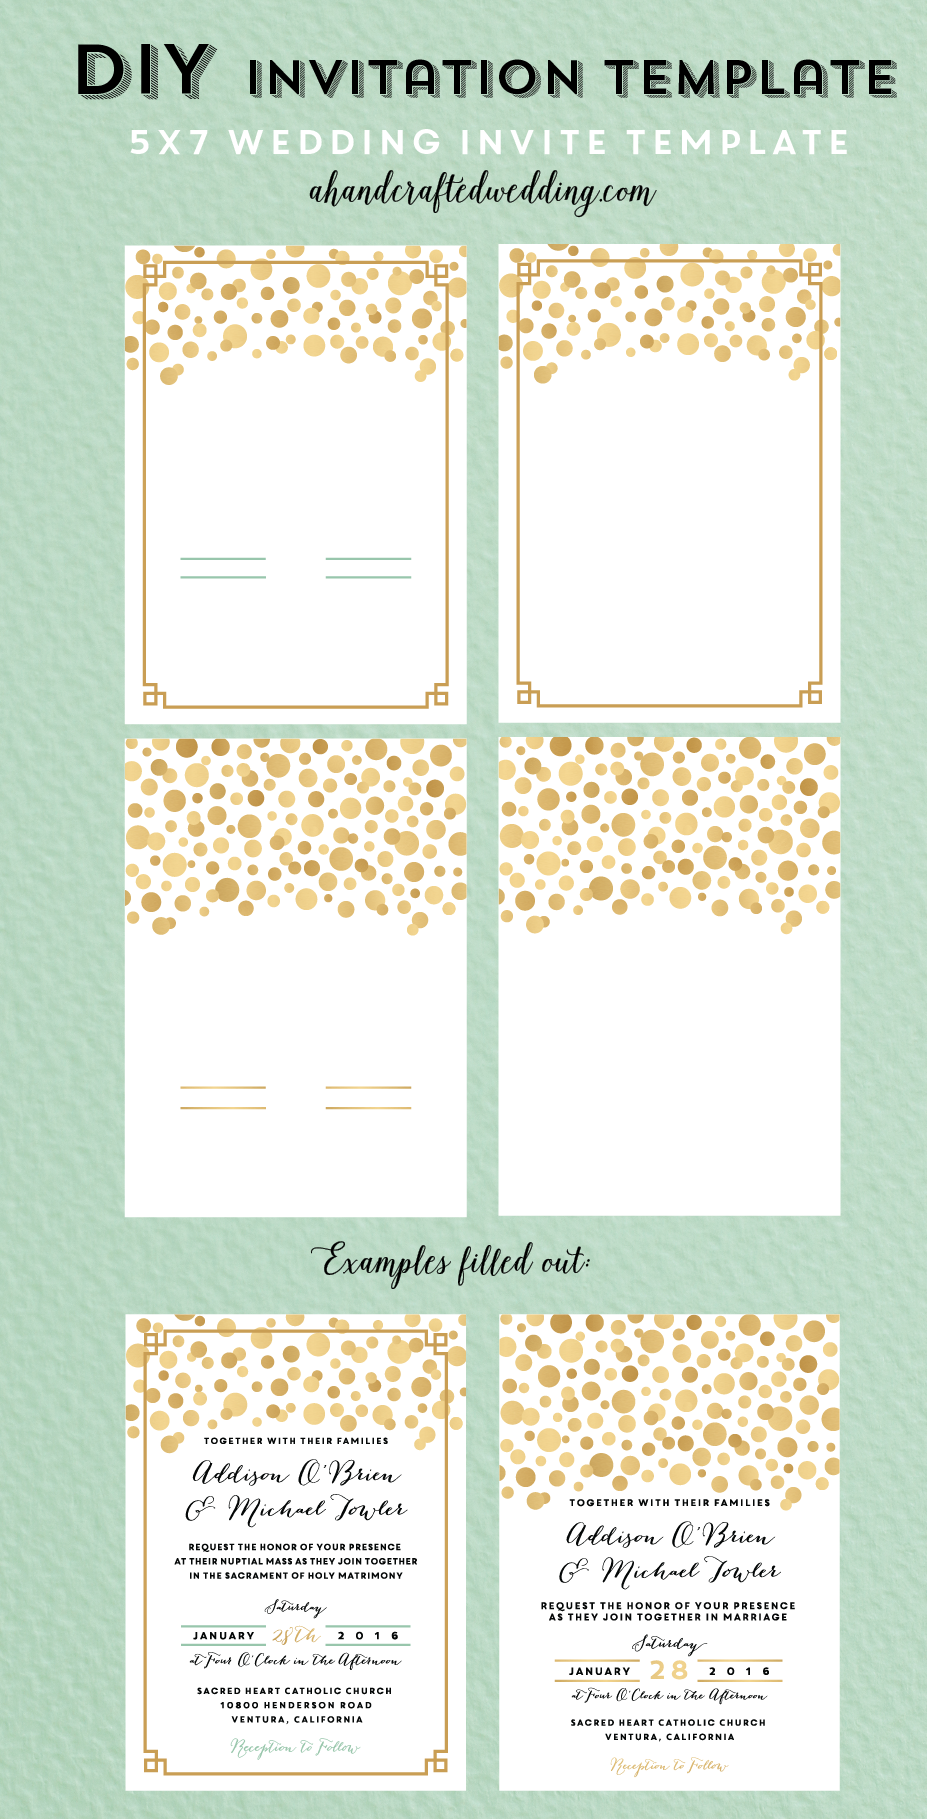 DIY Gold Polka Dot Printable Wedding Invitation Templates - |This ...